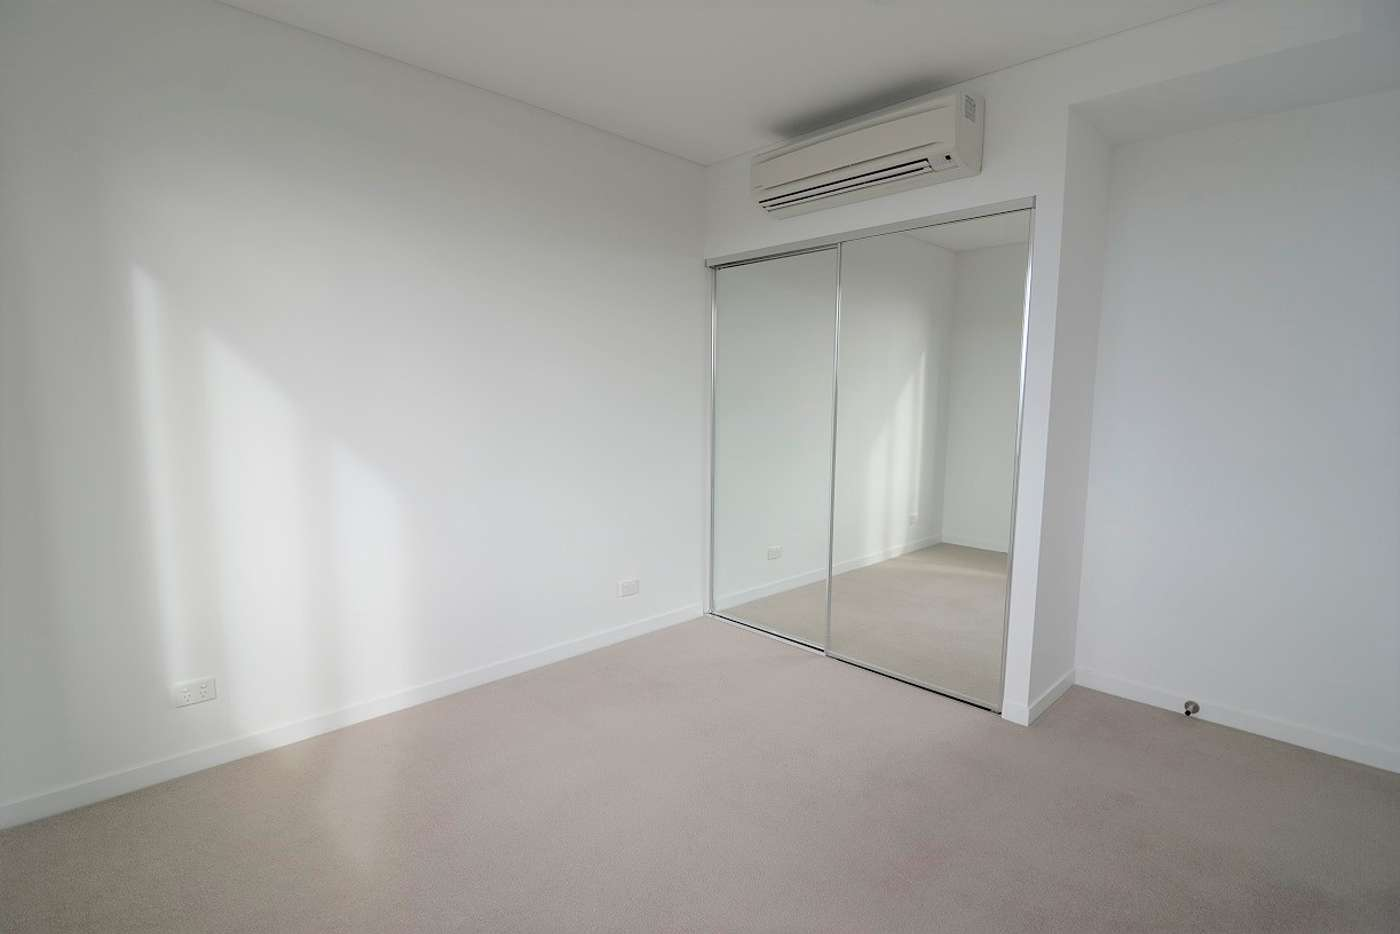 Fifth view of Homely apartment listing, 10216/320 MacArthur Ave, Hamilton QLD 4007